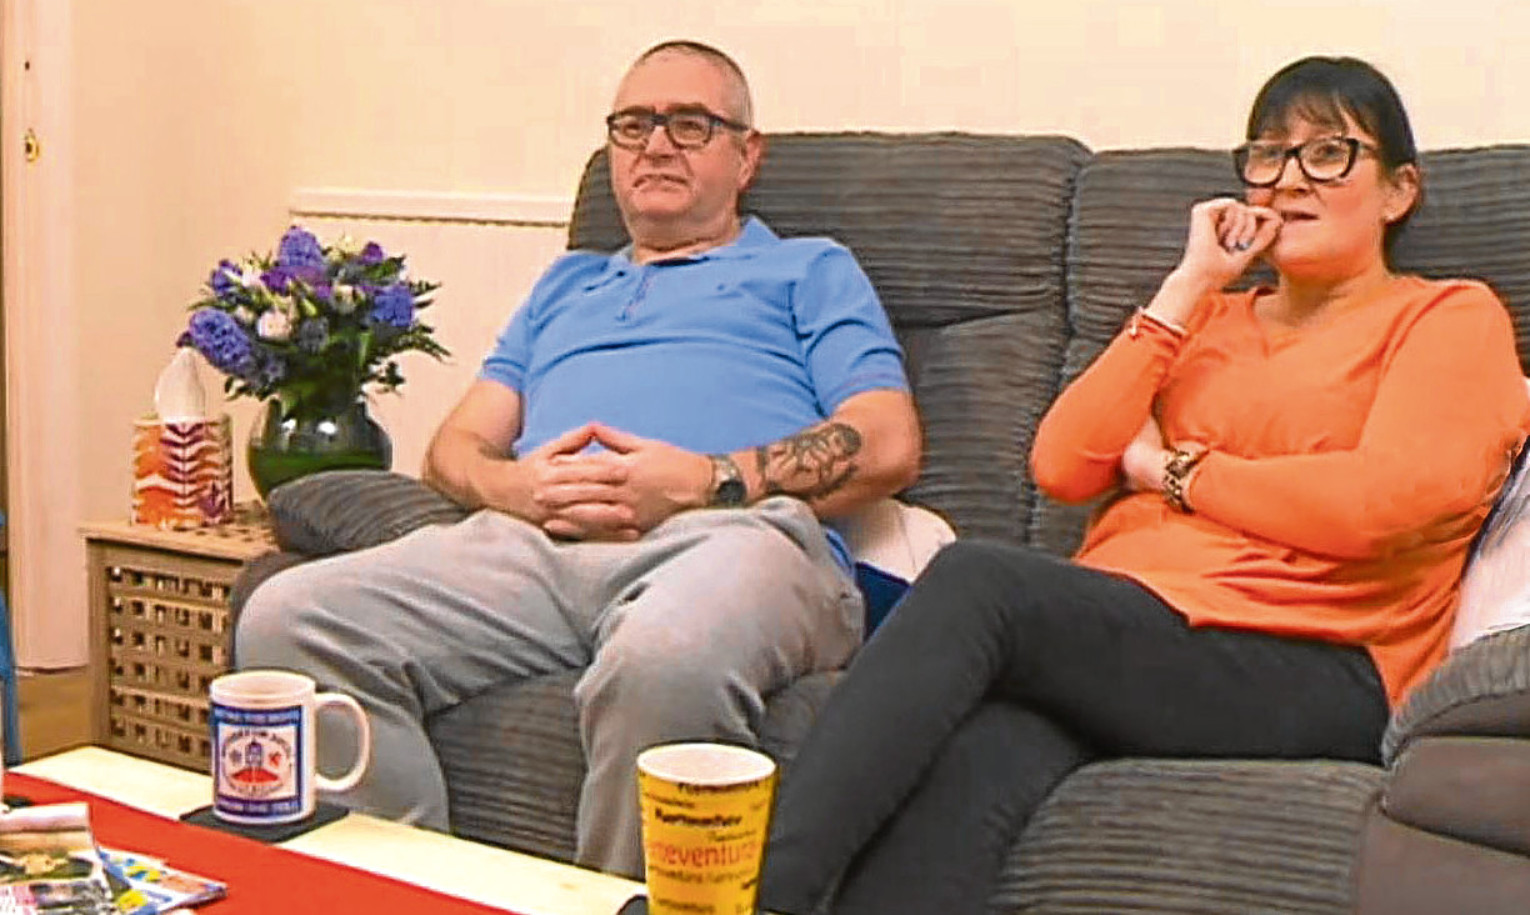 Watching Gogglebox is fun but how many hours of TV watching conversation is edited out?